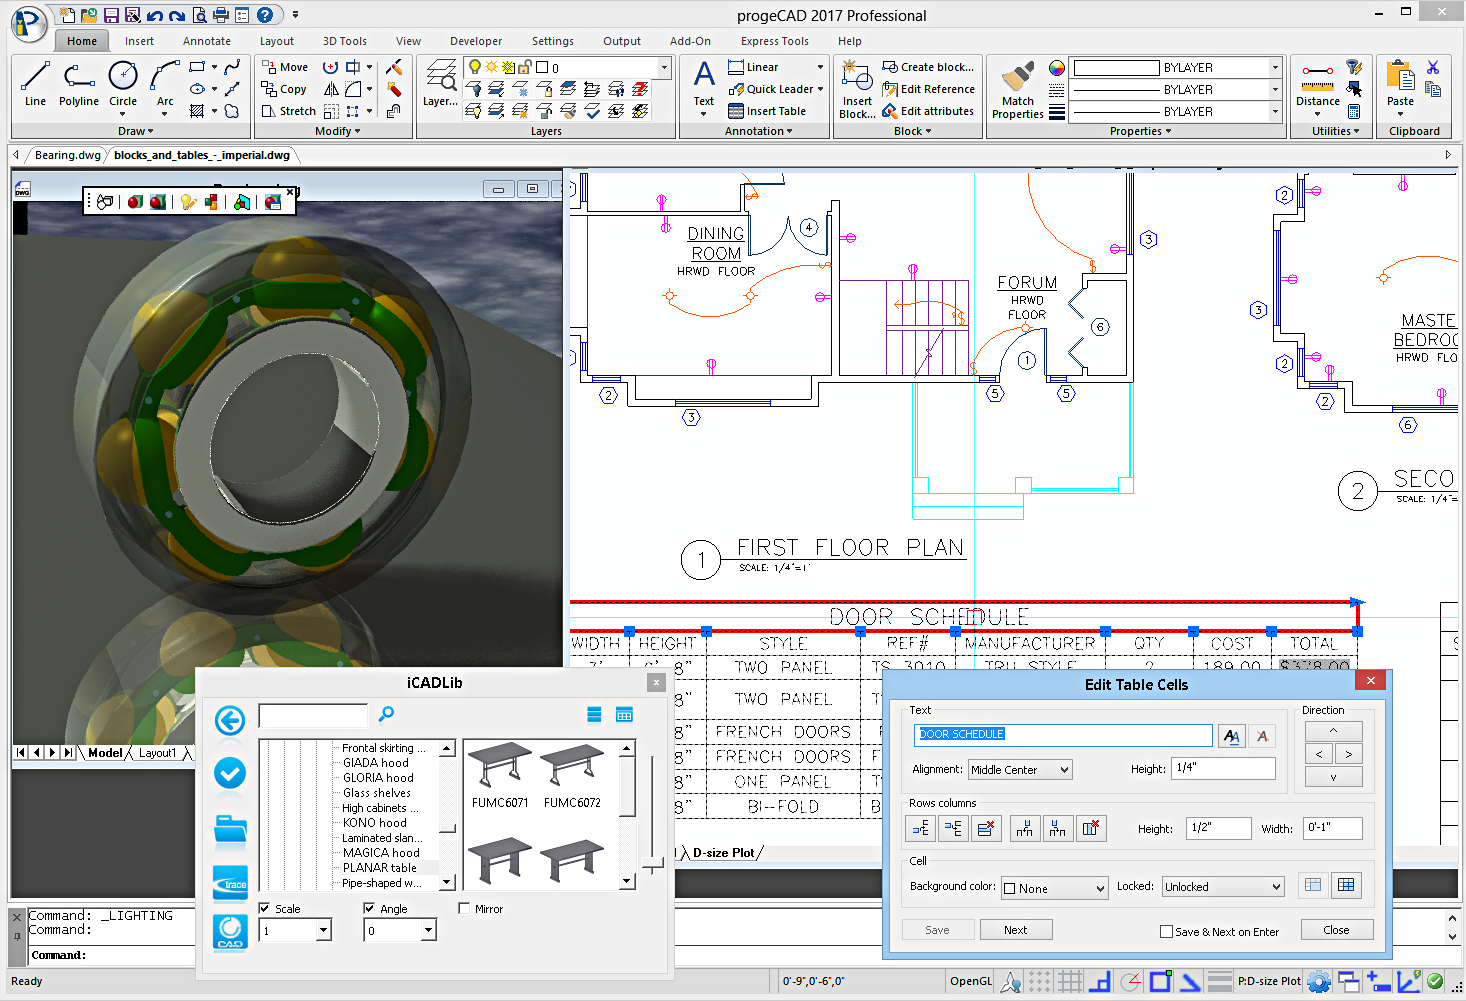 Progecad 2018 Professional Cad Software 18 0 2 8 At Soft